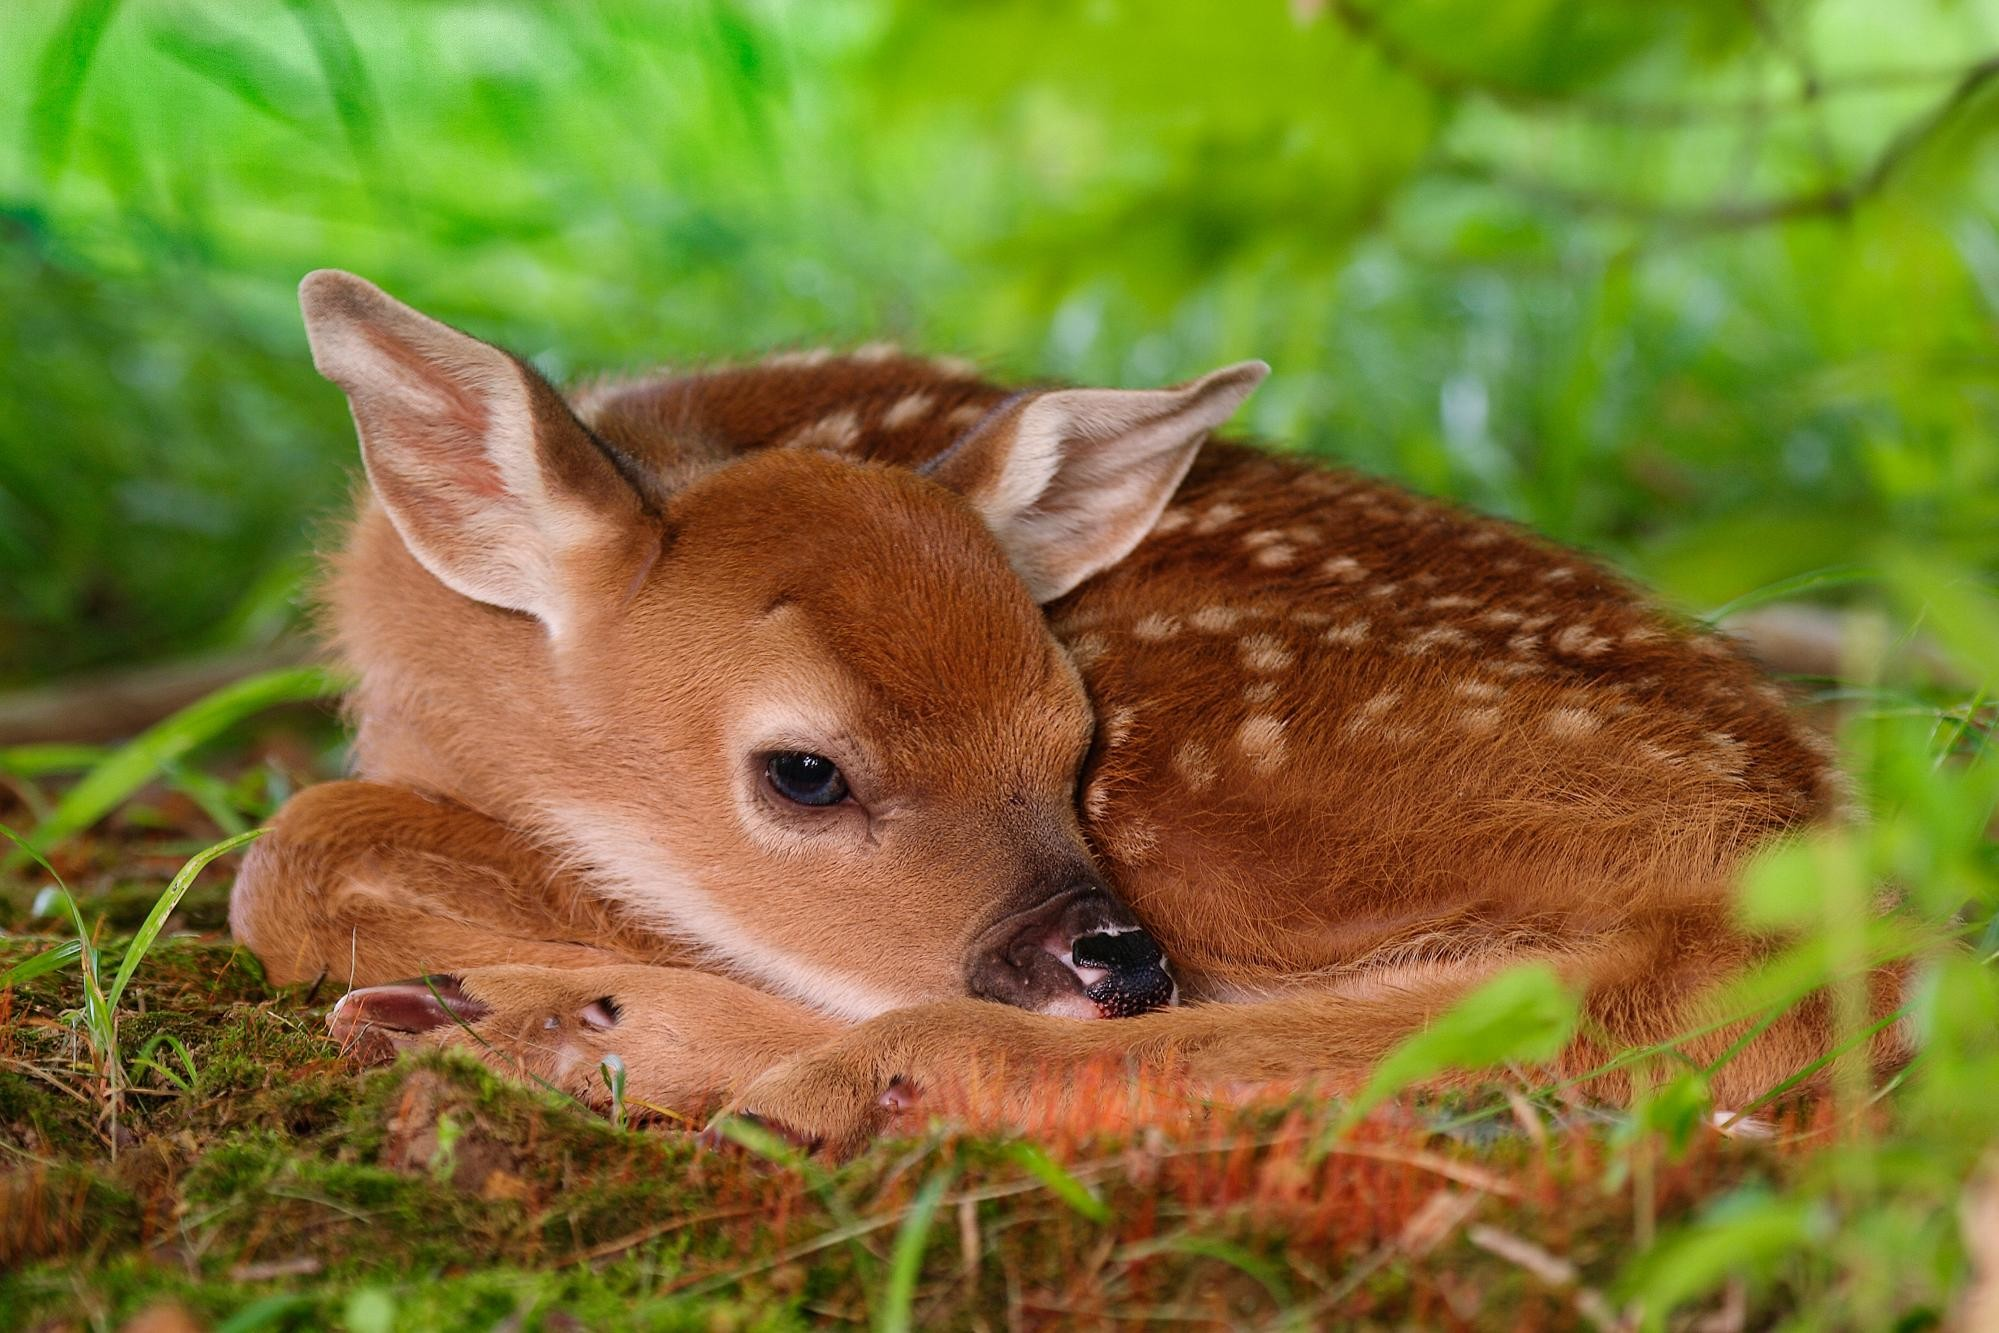 Res: 1999x1333, 1024x640 Letest and best Animals HD Wallpapers Download Animals Desktop .